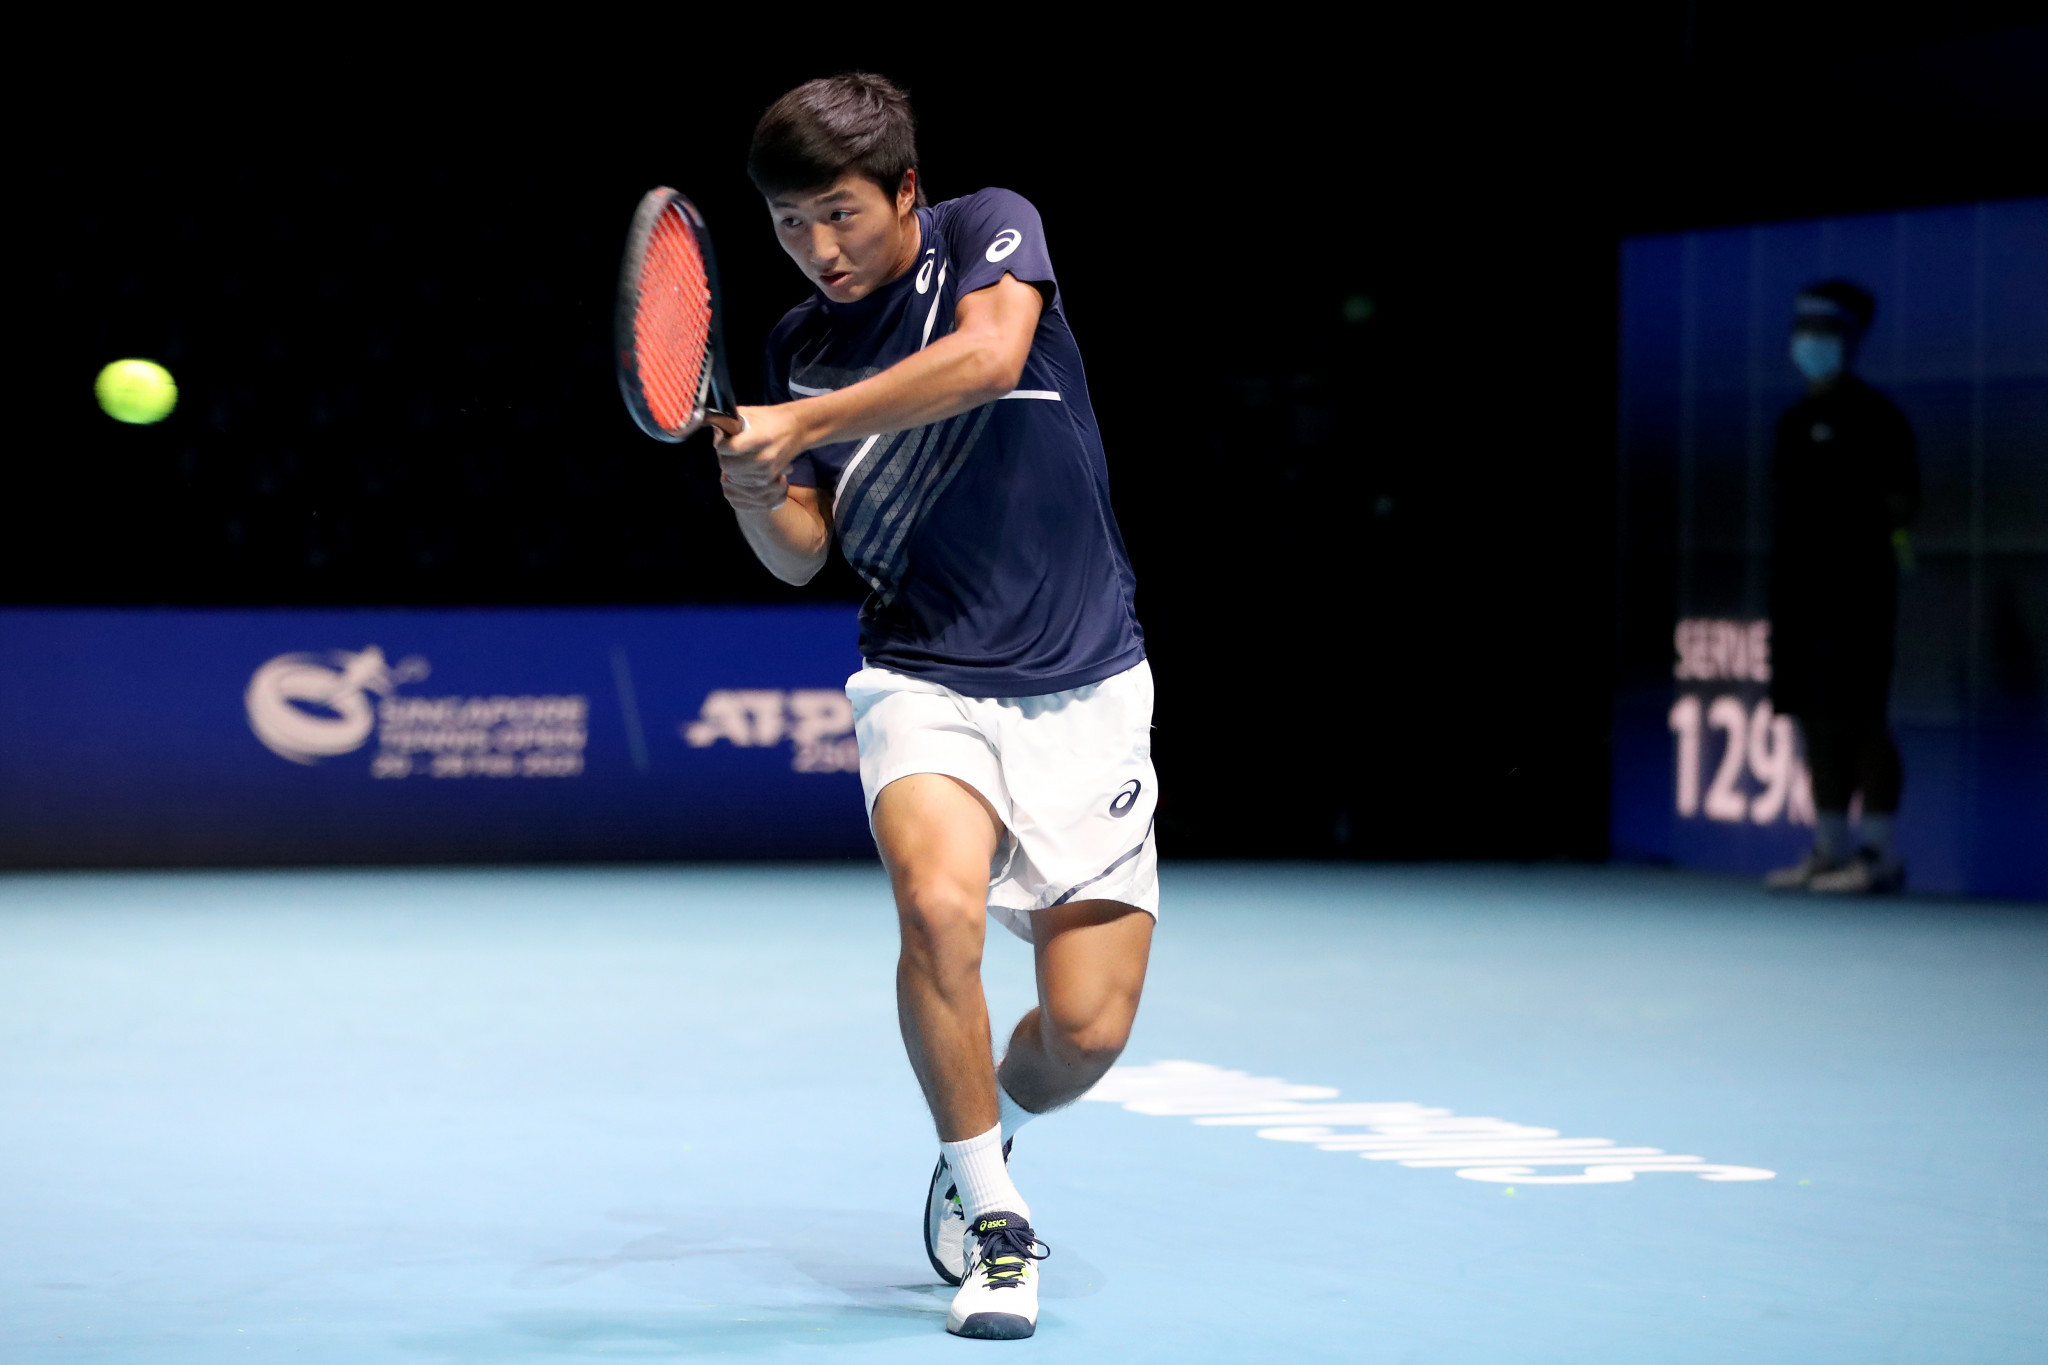 Former junior world number one Shintaro Mochizuki played for Japan in Davis Cup qualifiers ©Getty Images